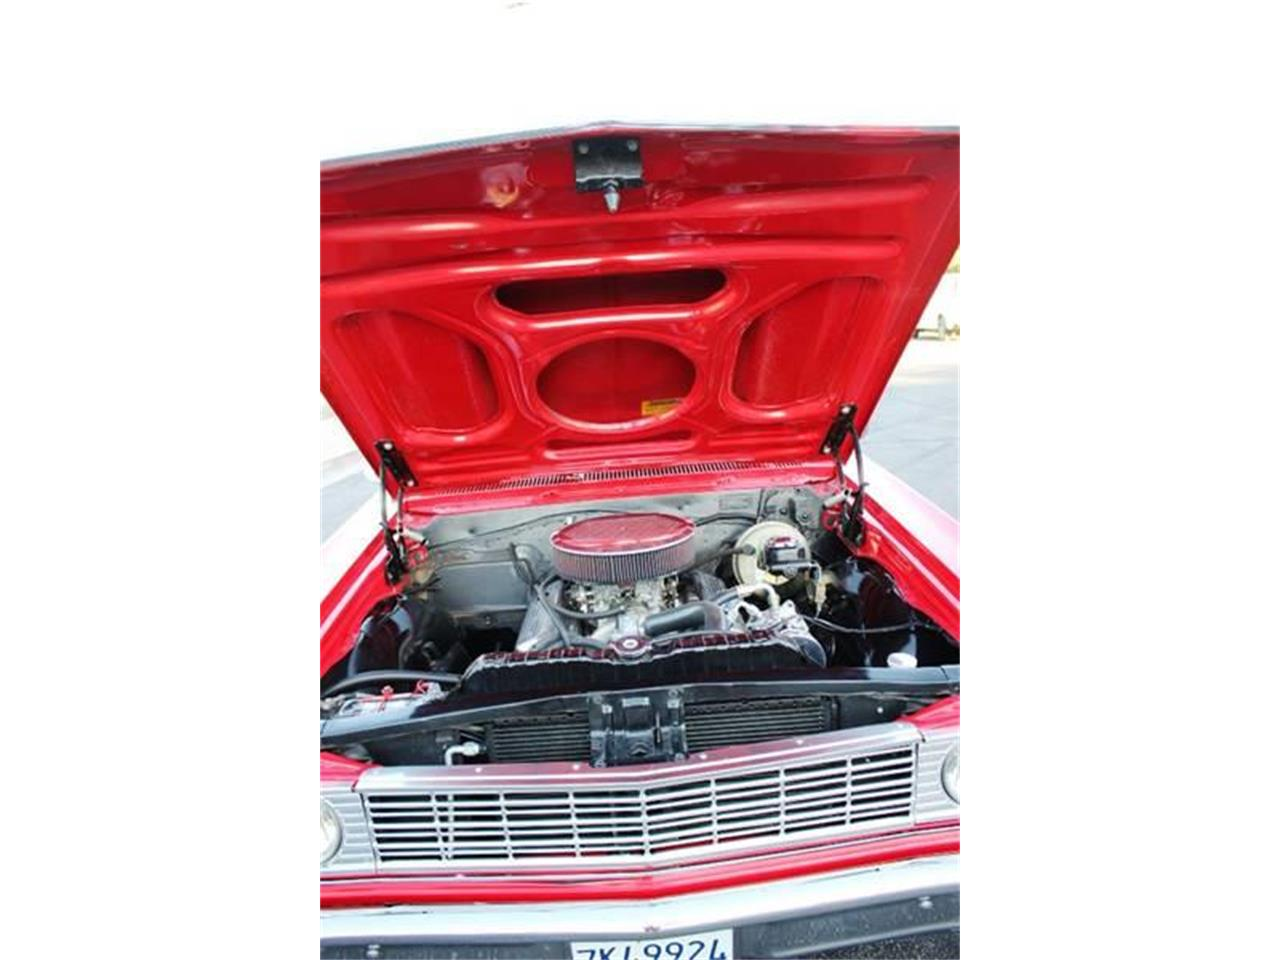 Large Picture of 1964 Chevrolet El Camino - $26,900.00 Offered by American Classic Cars - MH9D